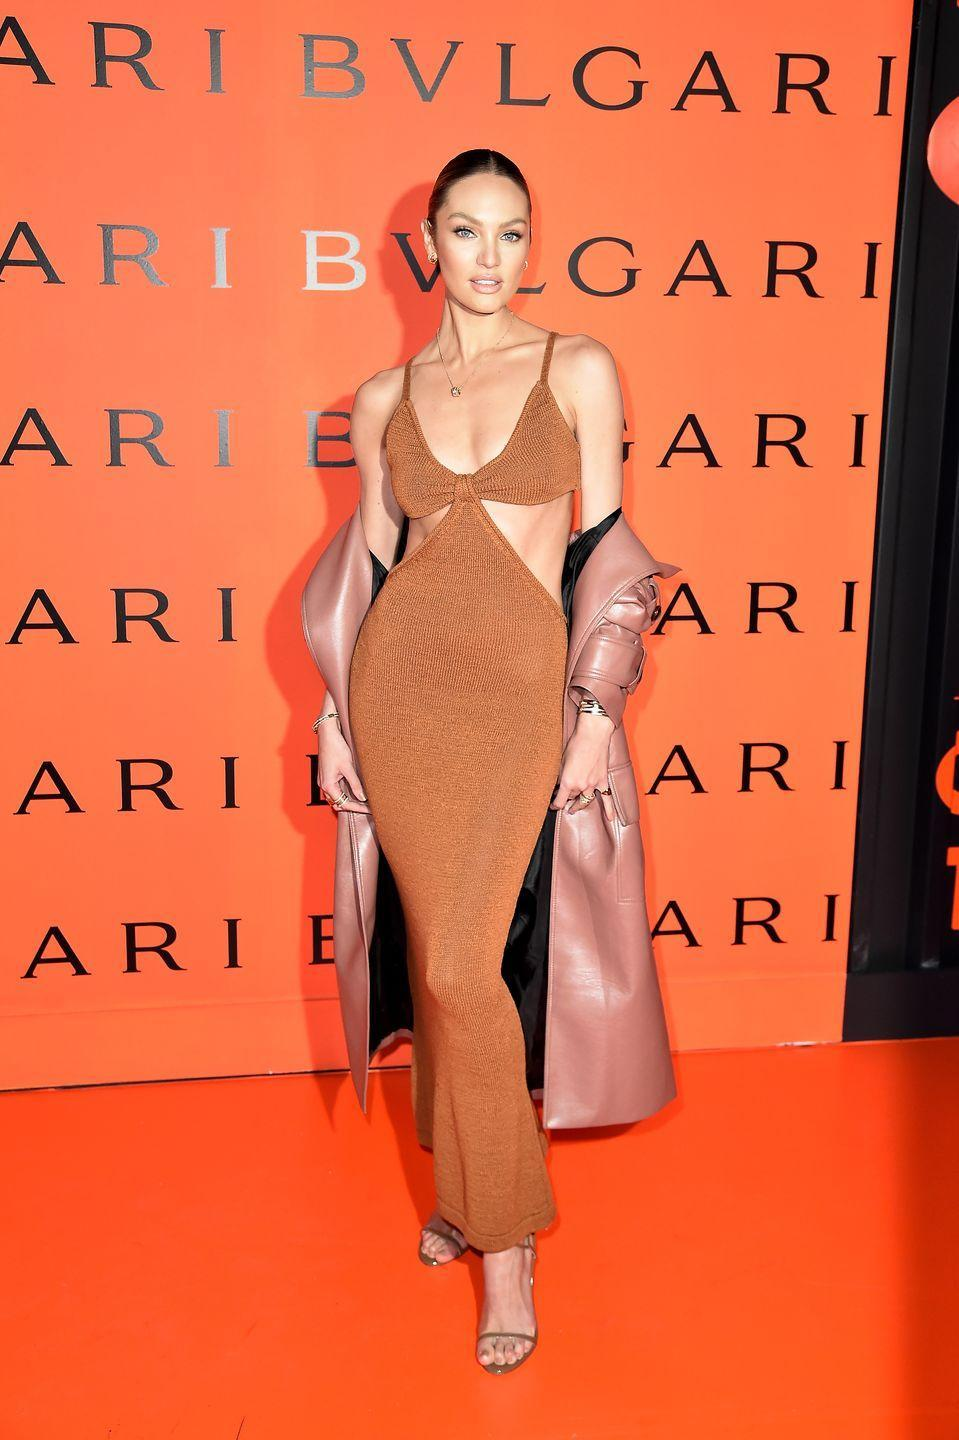 "<p>What a difference a year makes. From haute couture elements infiltrating our day-to-day garbs in 2019 to leisurewear becoming de rigueur in 2020, fashion experienced a drastic shift. Still, there was one item that stood out from the sea of sweats, and that was <a href=""https://www.harpersbazaar.com/fashion/trends/a32702906/dress-of-summer-2020/"" rel=""nofollow noopener"" target=""_blank"" data-ylk=""slk:Cult Gaia's Serita dress"" class=""link rapid-noclick-resp"">Cult Gaia's Serita dress</a>. Made of stretch knit and featuring sleek cutouts, the frock was a favorite of the stylish set, including Candice Swanepoel, who wore it on the red carpet, and Hailey Bieber, who donned the dress on an island vacation. </p>"